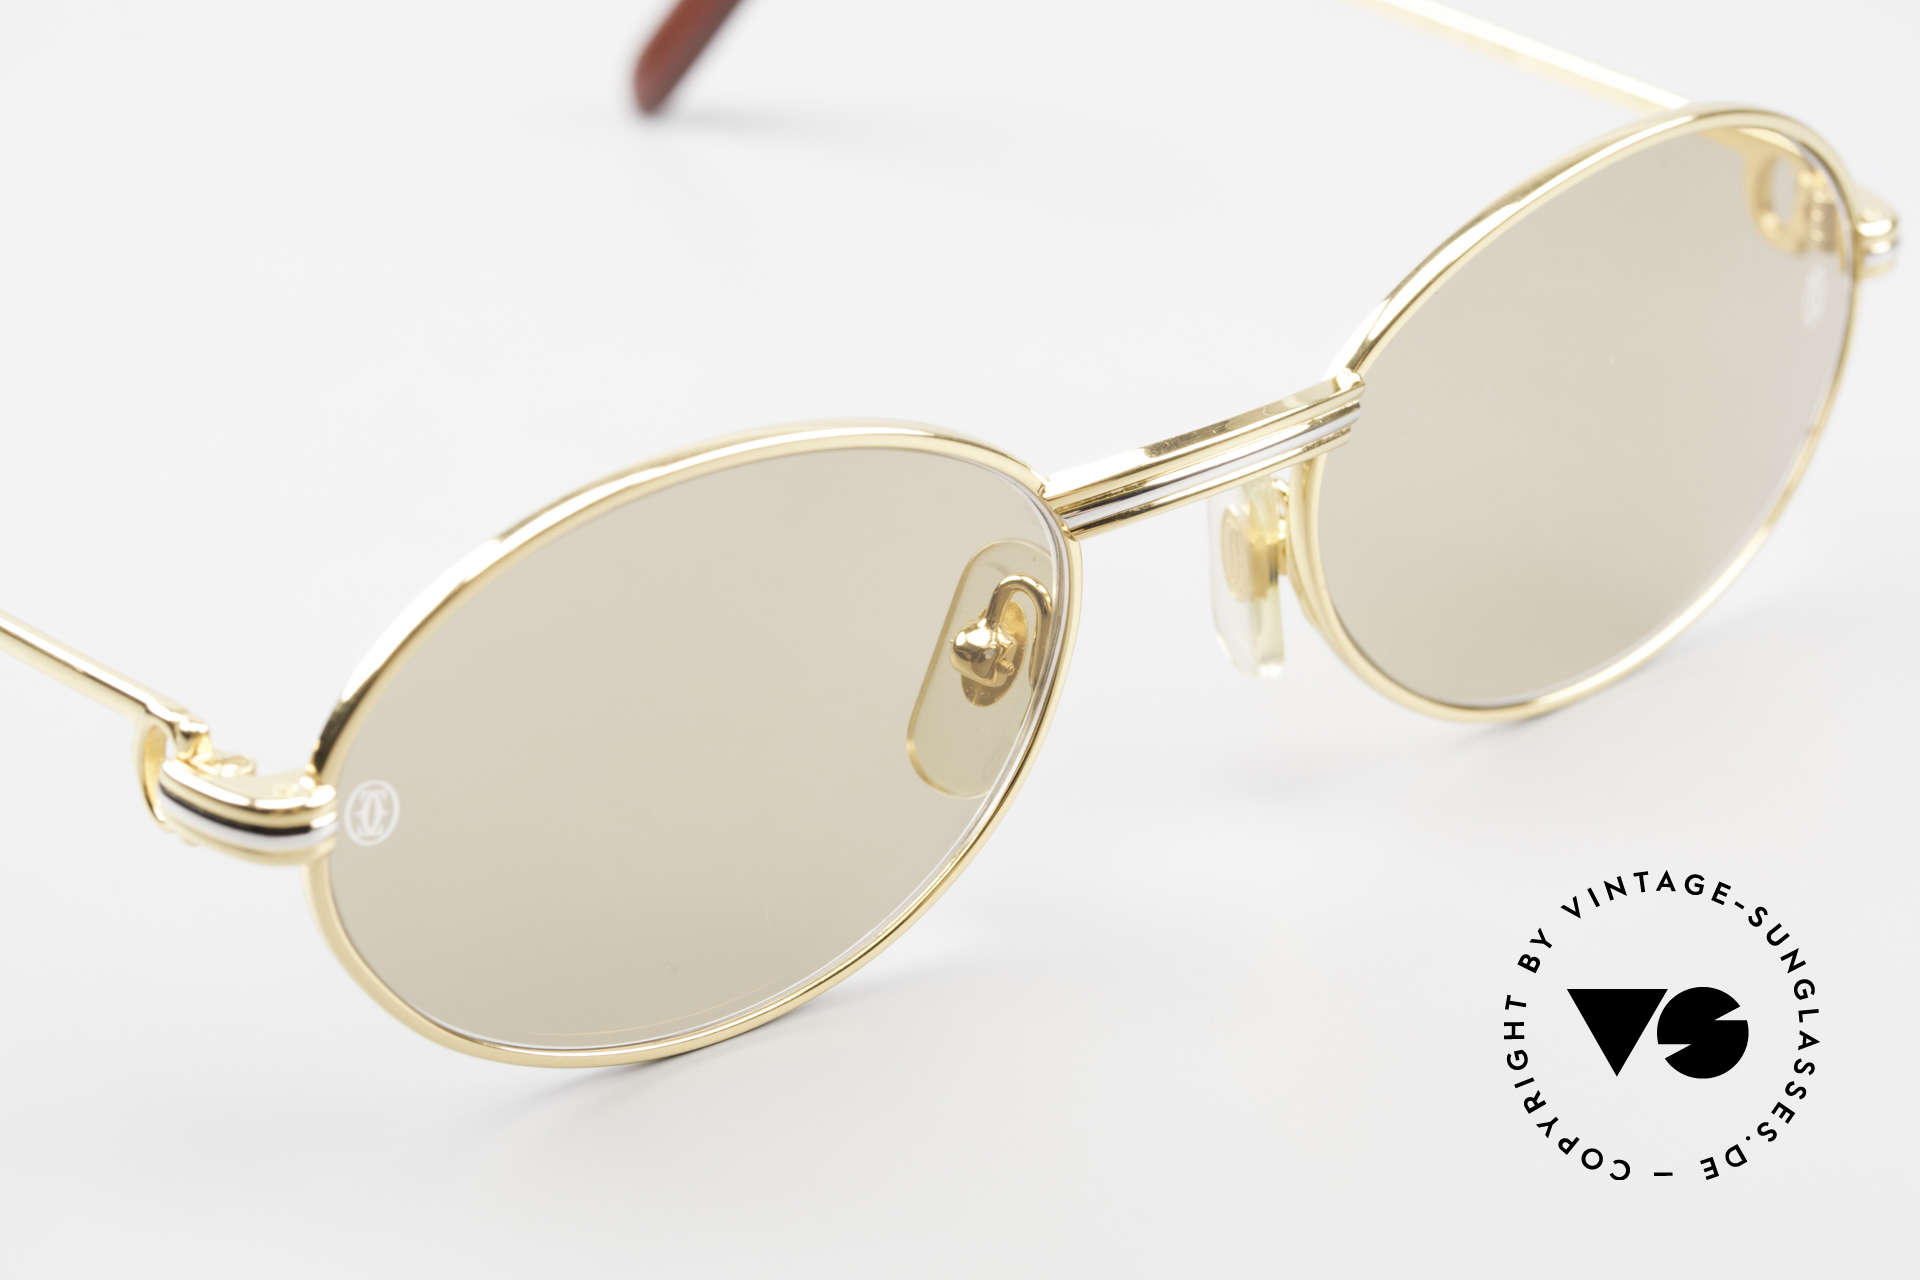 Cartier Saint Honore - S Oval 90's Luxury Sunglasses, 2nd hand model, but in mint condition with orig. box, Made for Men and Women